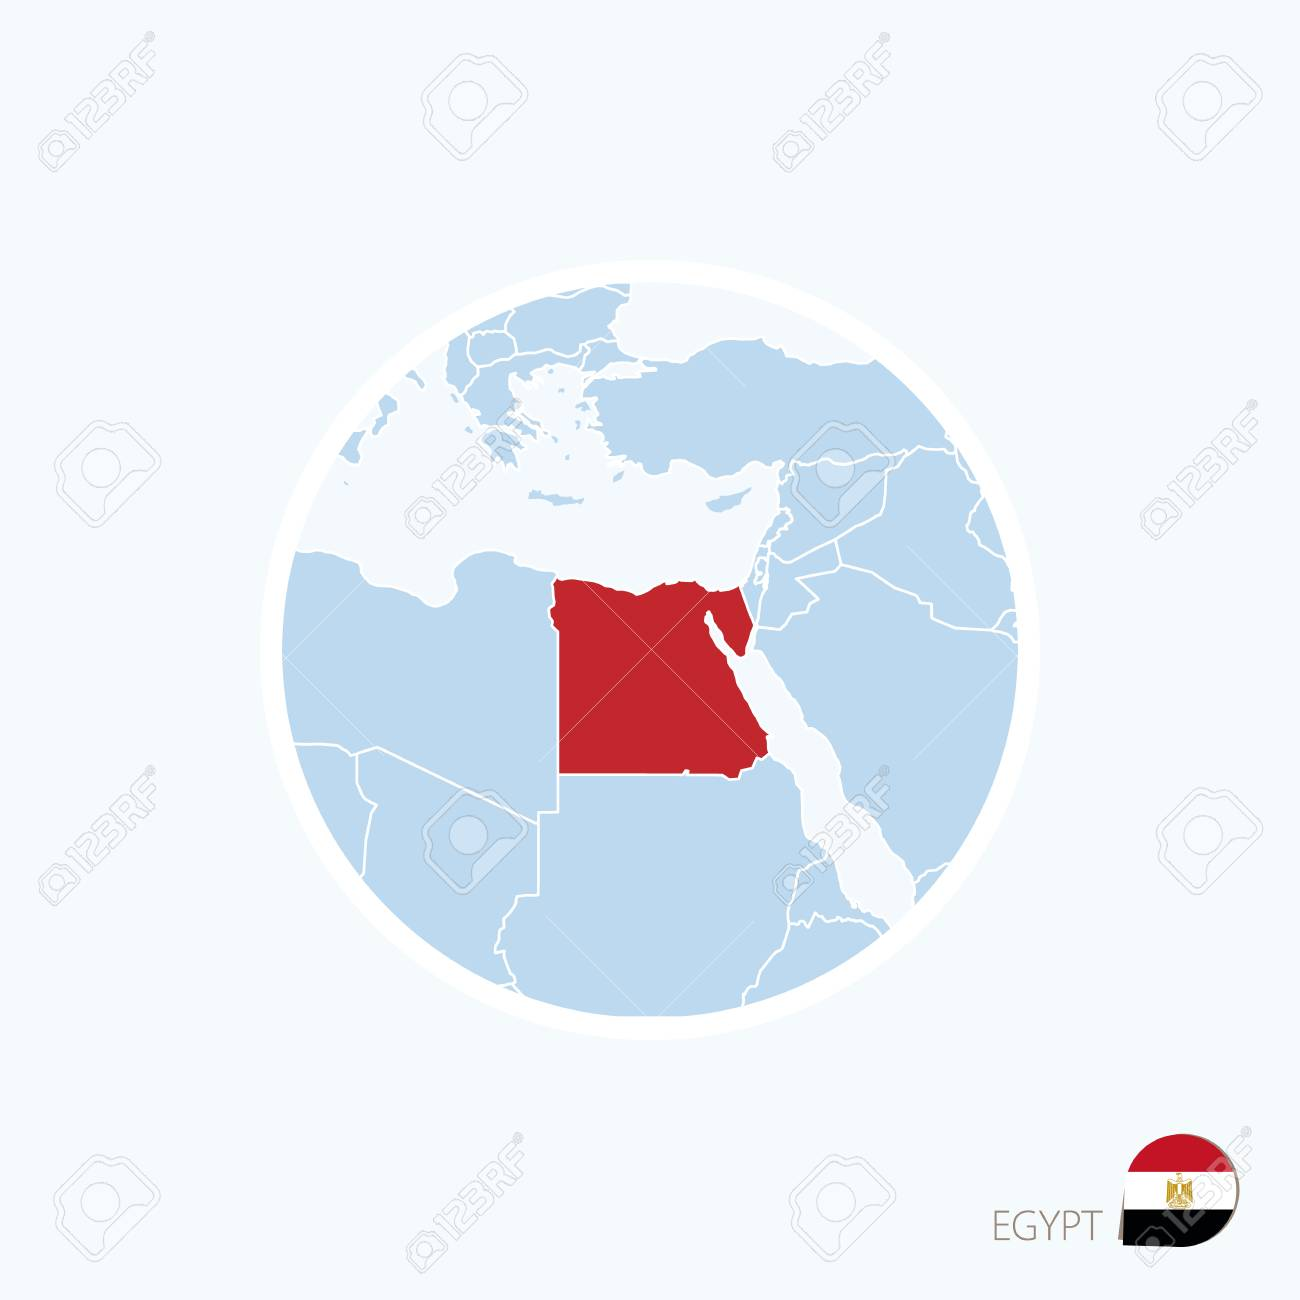 Map icon of egypt blue map of europe with highlighted egypt map icon of egypt blue map of europe with highlighted egypt in red color gumiabroncs Image collections